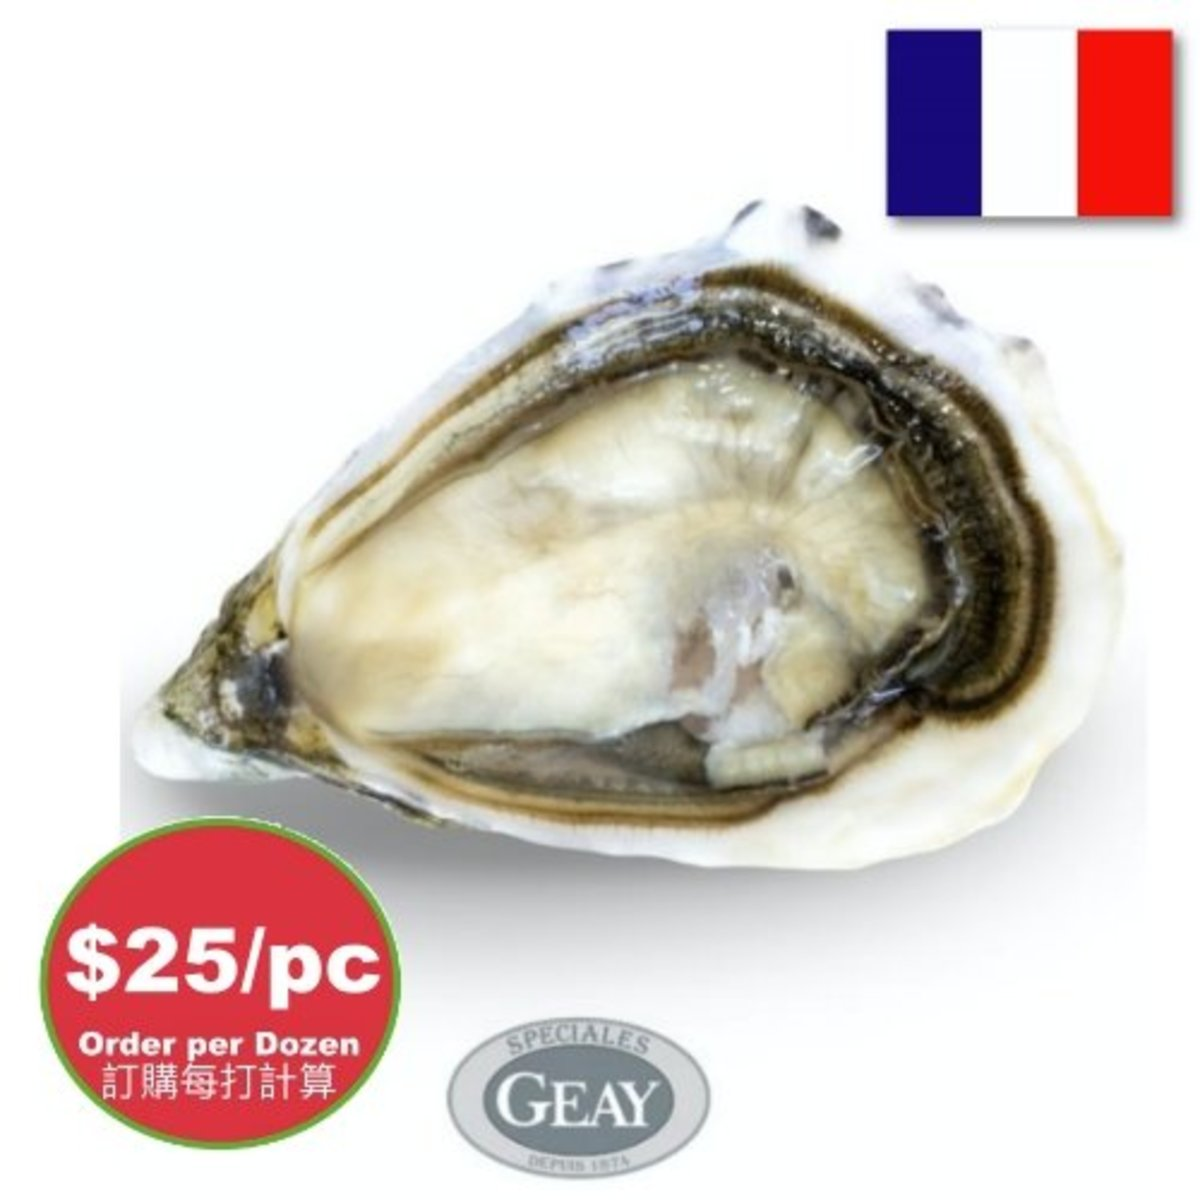 #1 French Special GEAY Live Oyster, 110-130g/pc. Price is for 12 pcs.